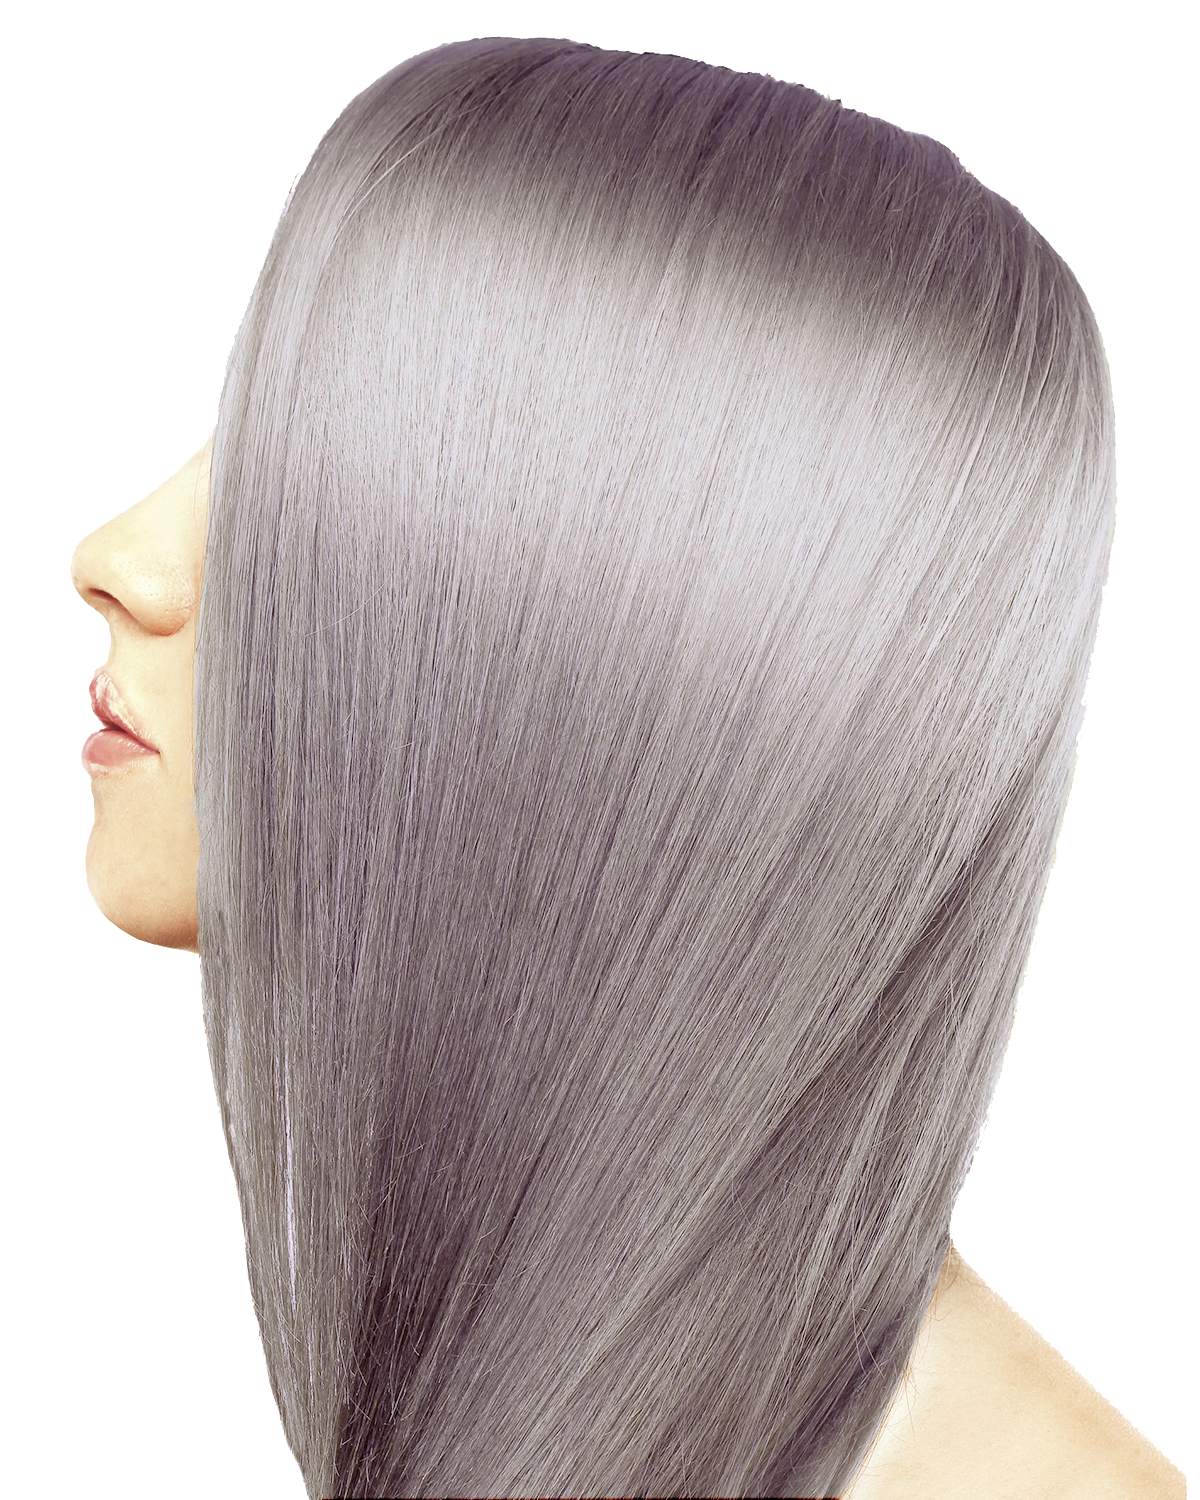 Ion Color Brilliance Intensive Shine Demi Permanent Creme Hair Color Is Formulated With B Semi Permanent Hair Color Light Hair Color Ammonia Free Hair Color